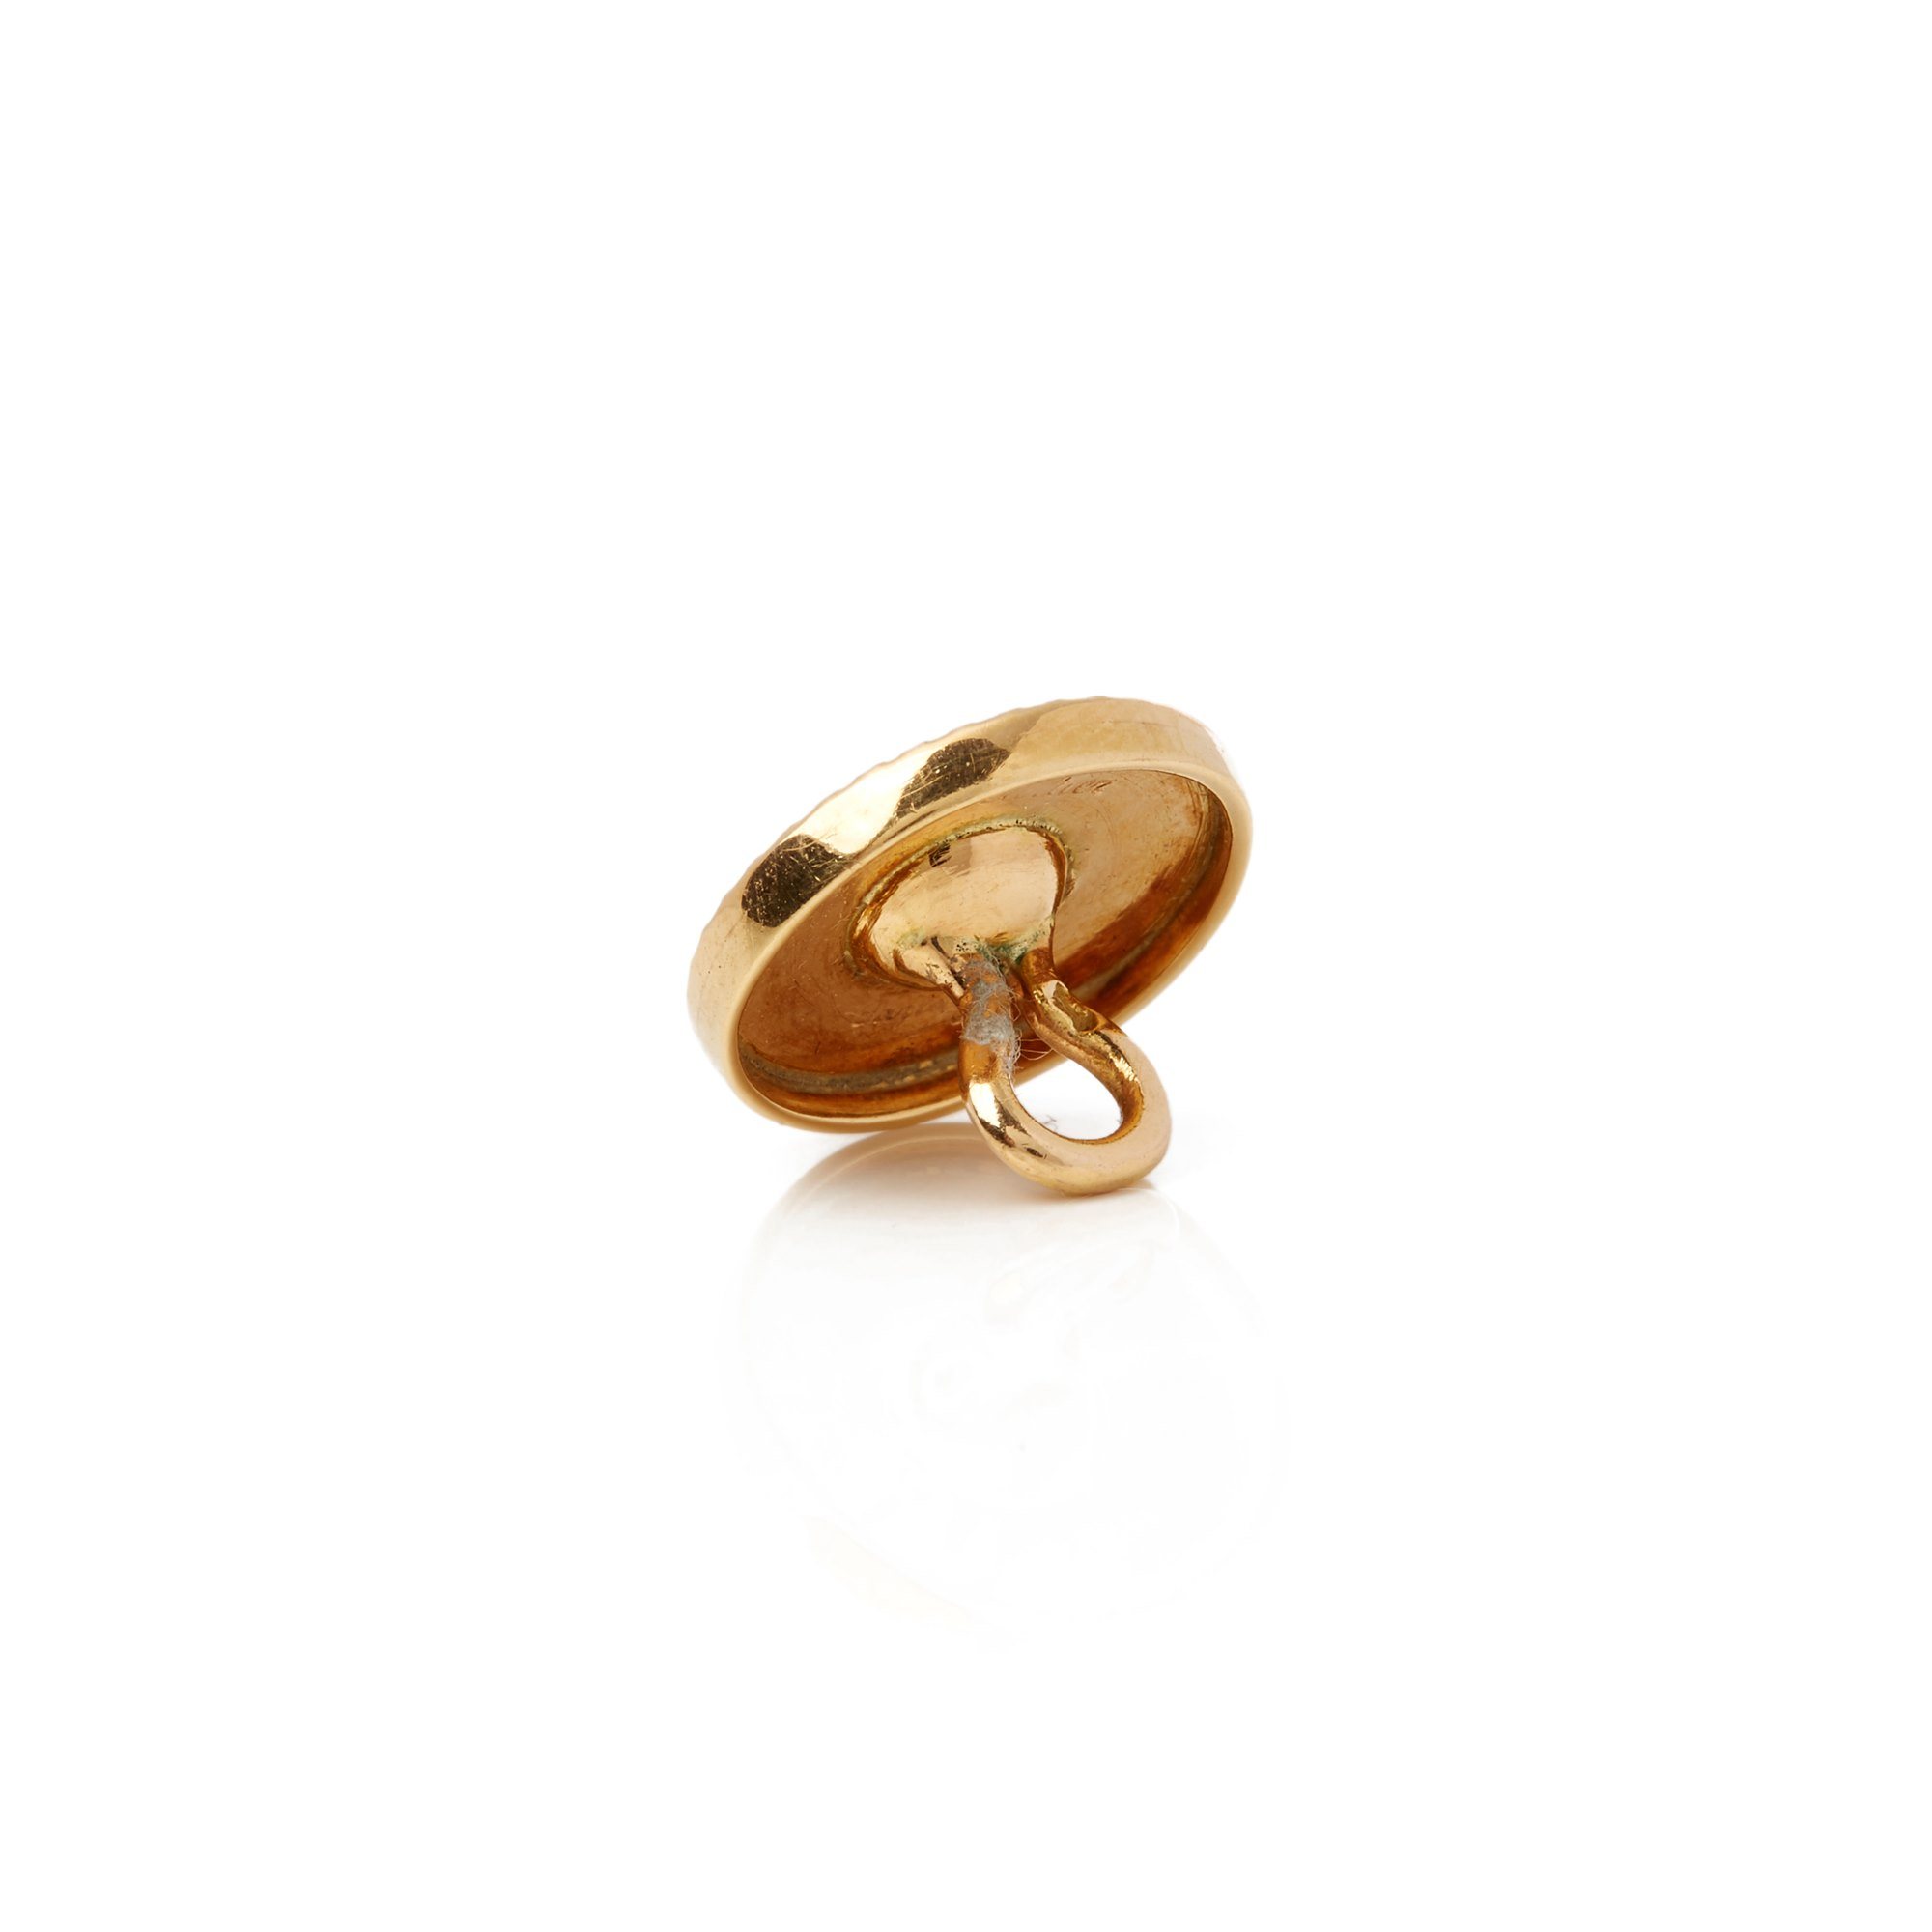 Cartier 18k Yellow Gold Cufflink and Dress Stud Suite